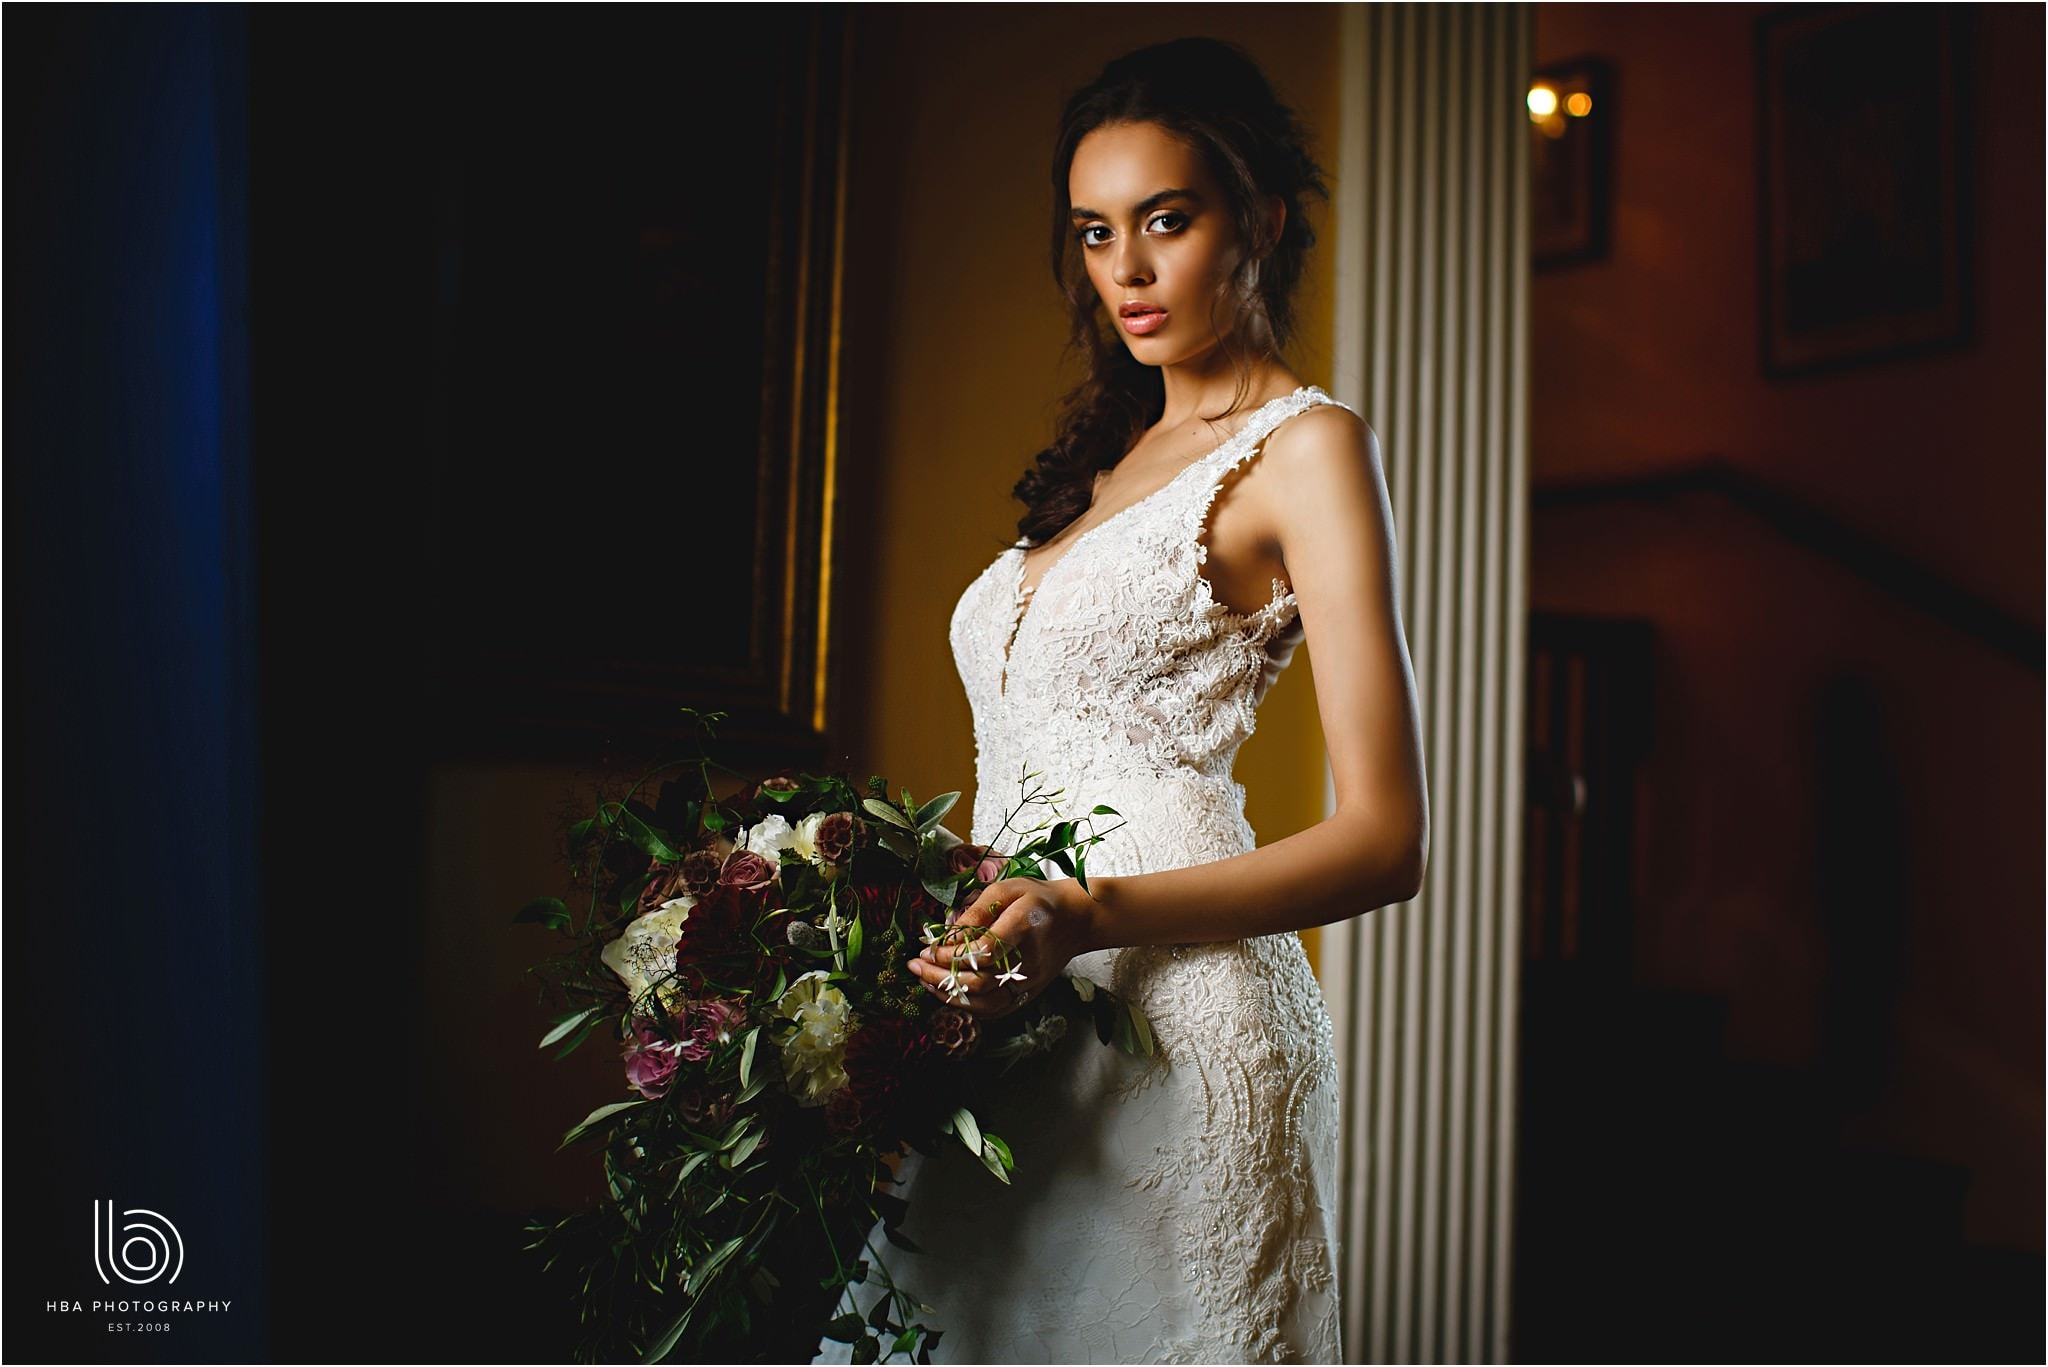 the bride stood in the hallway at Dorfold Hall